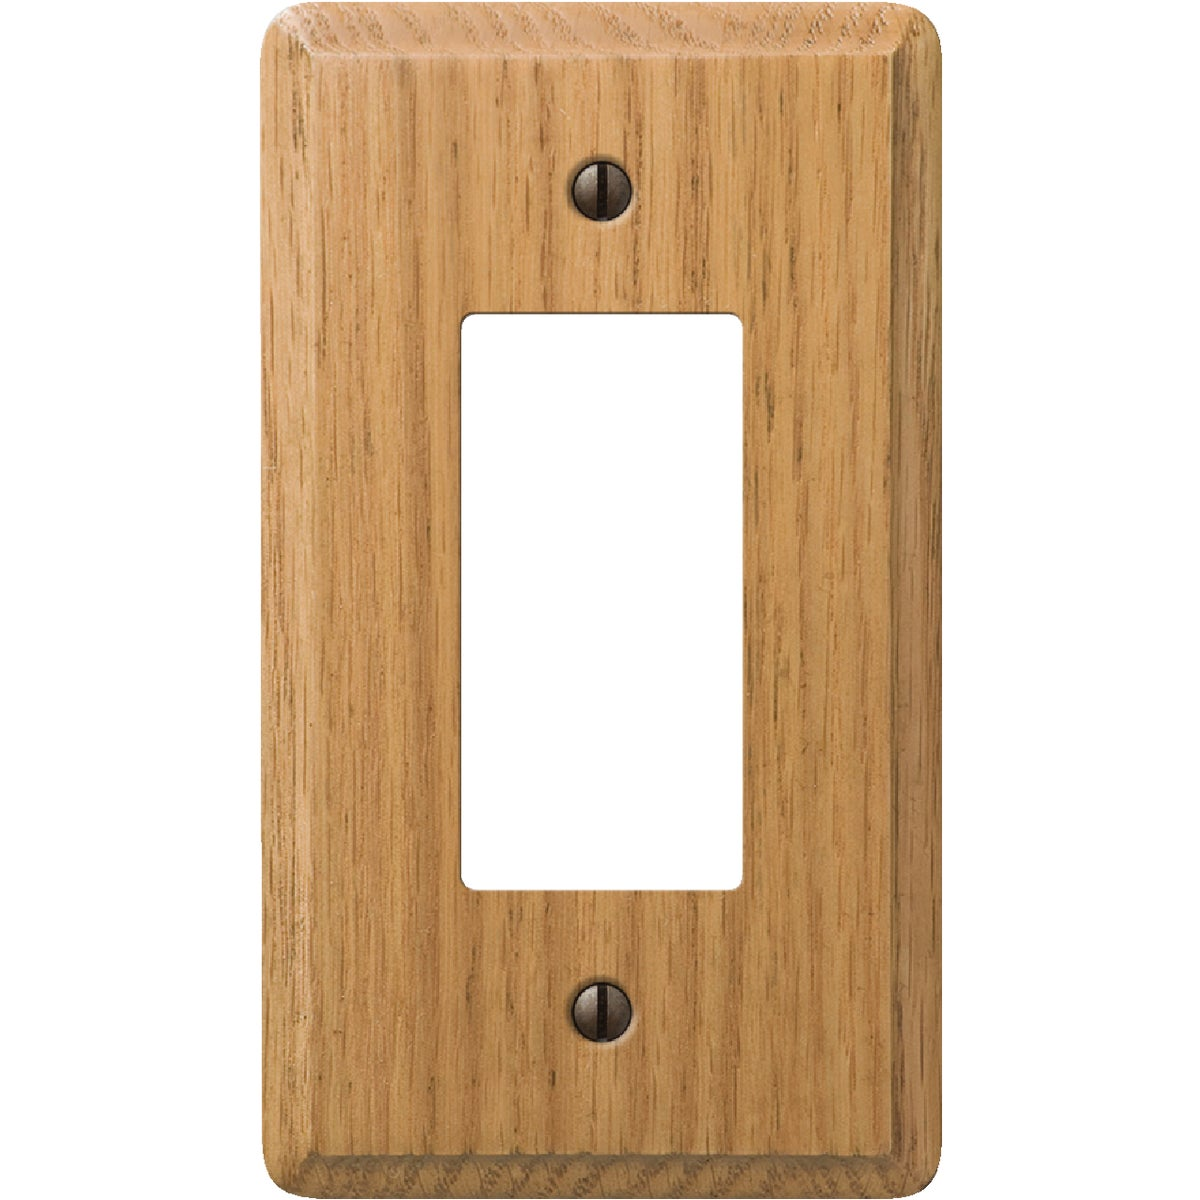 LT OAK GFI WALL PLATE - 917L by Jackson Deerfield Mf